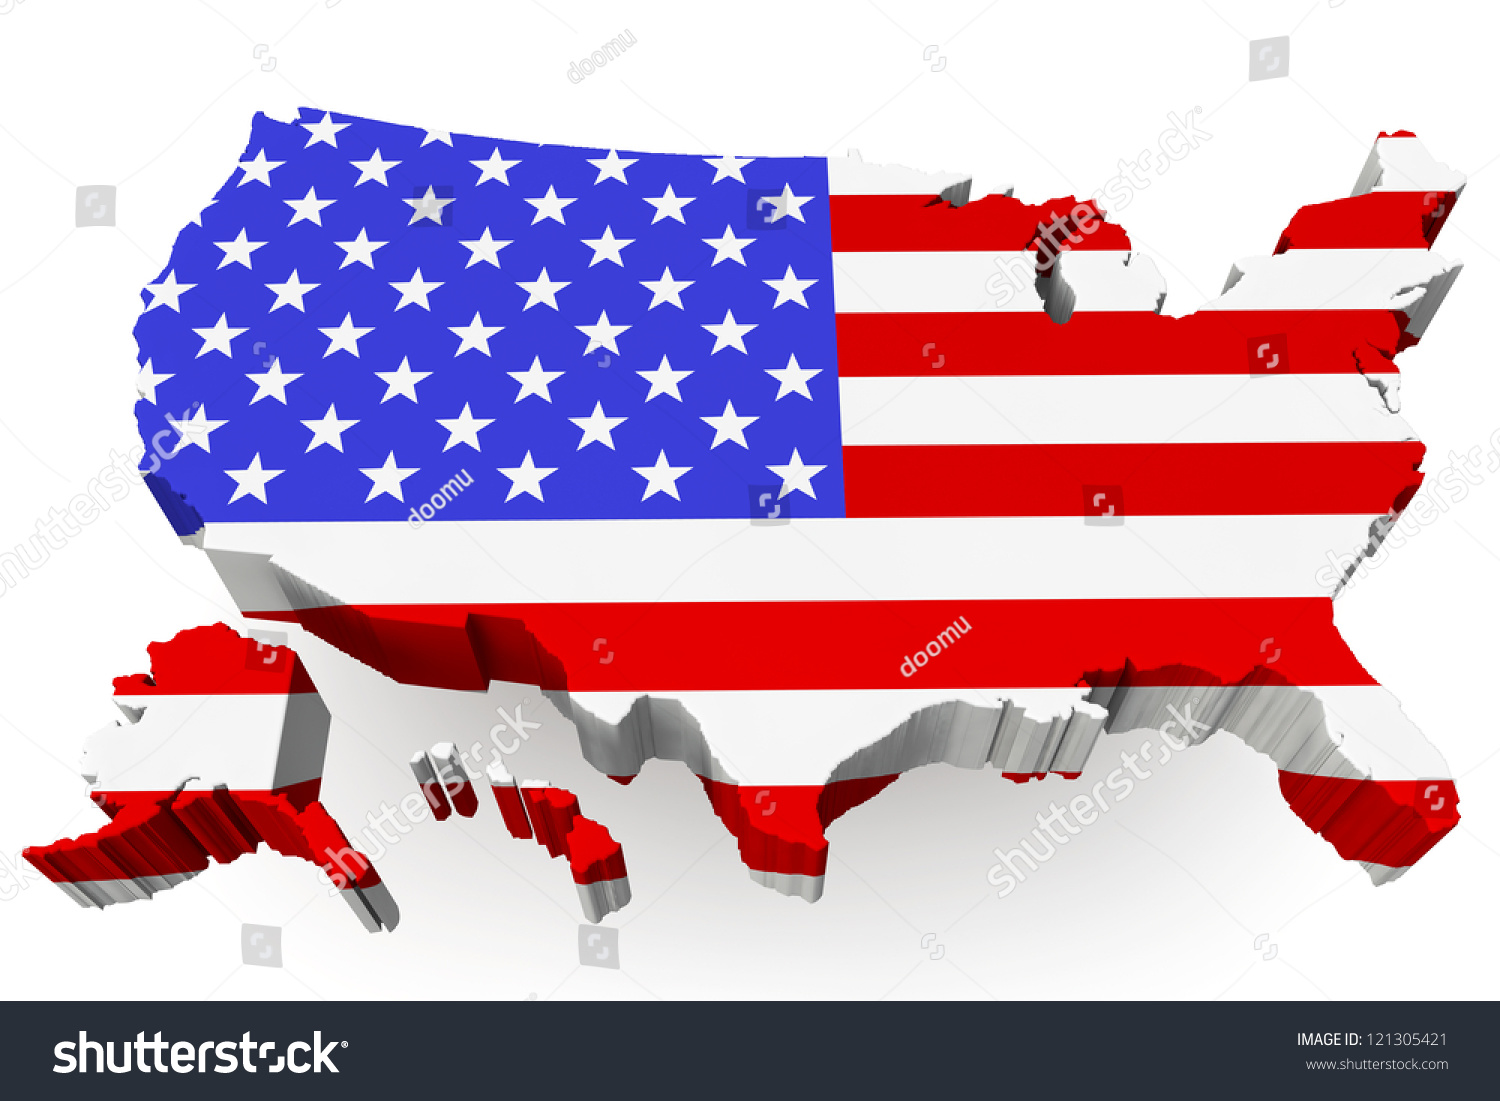 Usa Map Usa Flag On White Stock Illustration Shutterstock - Us flag map